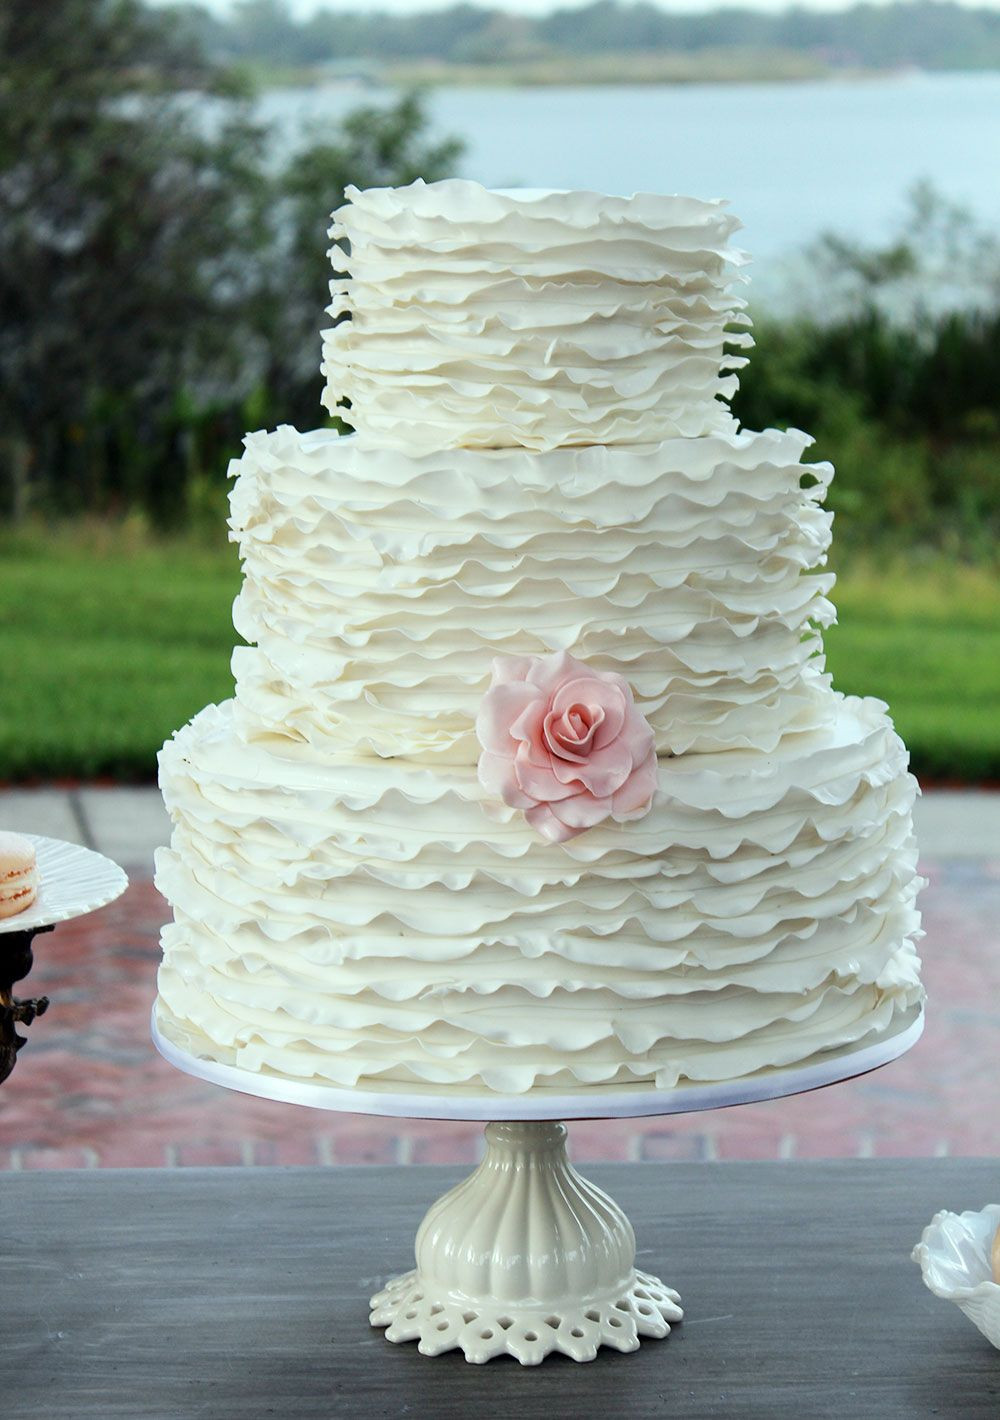 Royal Icing Flowers For Wedding Cakes  Rose Cage Cake Makes Cake Central Magazine with Royal